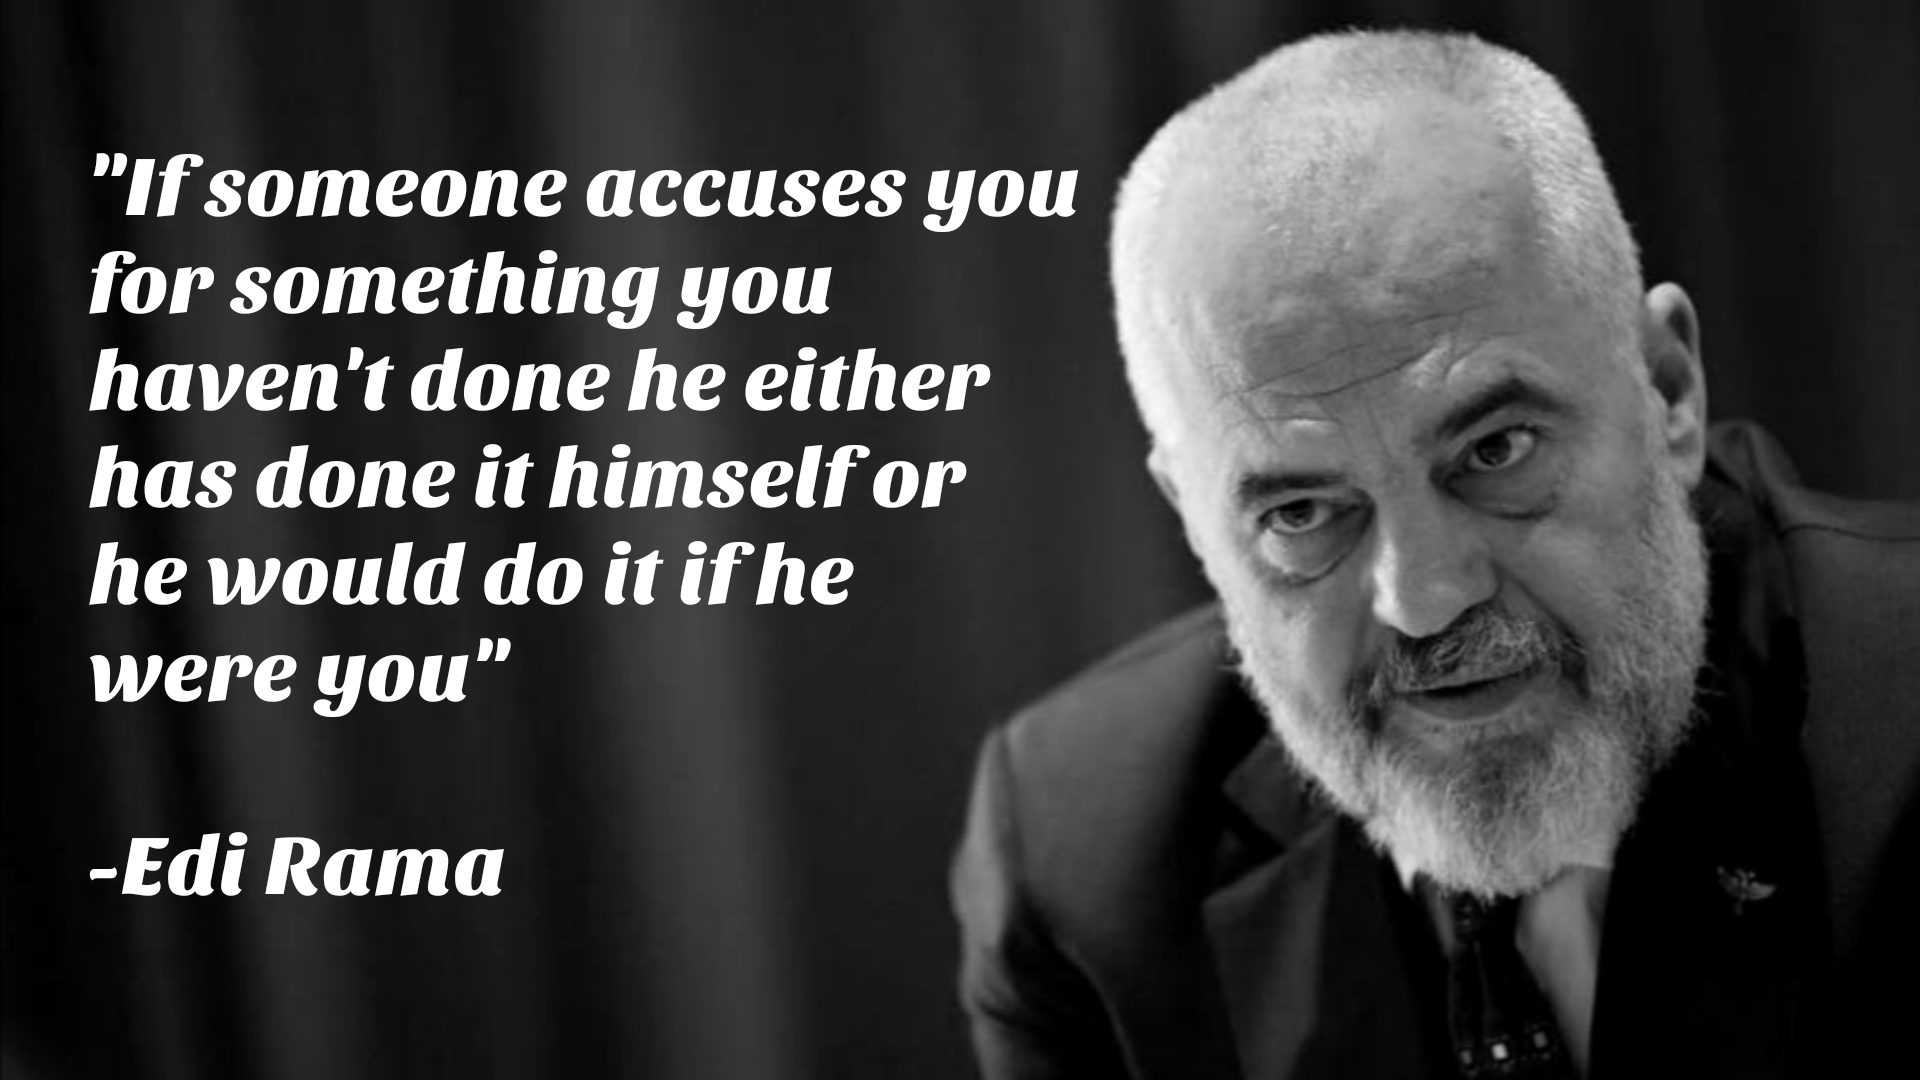 """If someone accuses you for something you haven't done he either has done it himself or he would do it if he were you"" – Edi Rama [1920×1080]"